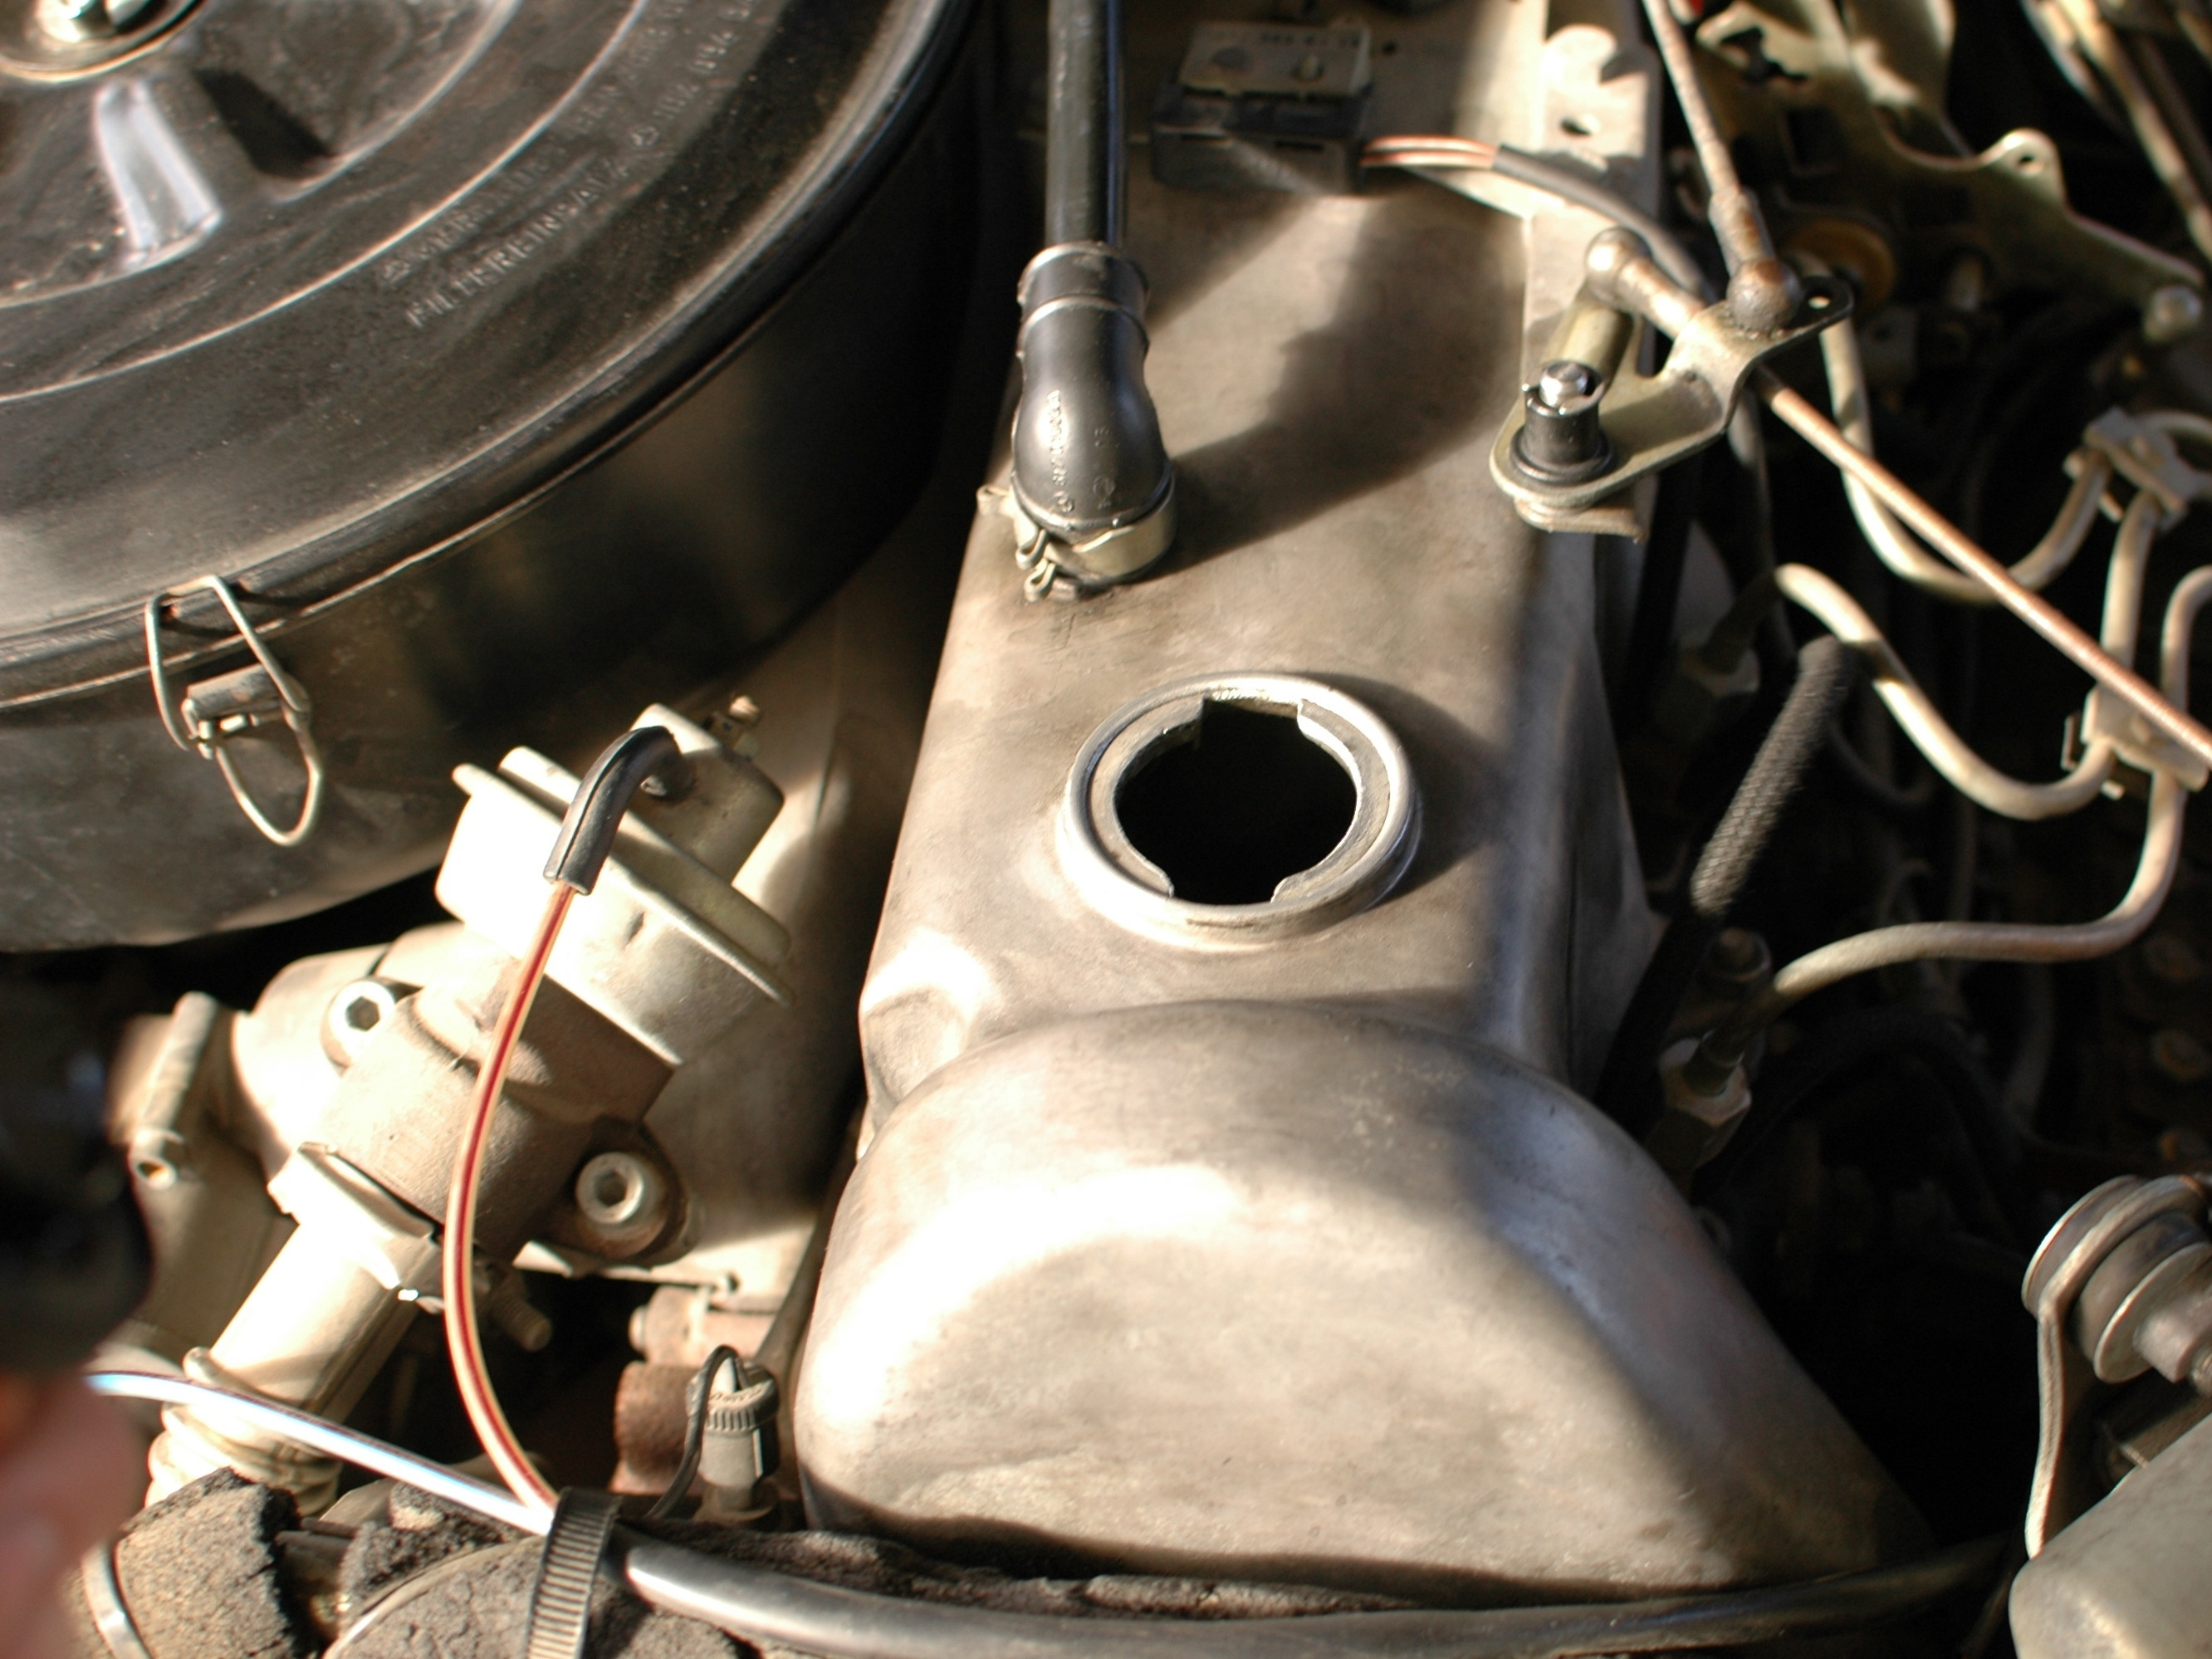 Mercedes W123 Repair Ifixit Engine Cooling System Diagram On 93 Nissan Truck Fuel Filter Basic Diesel Blow By Test Technique